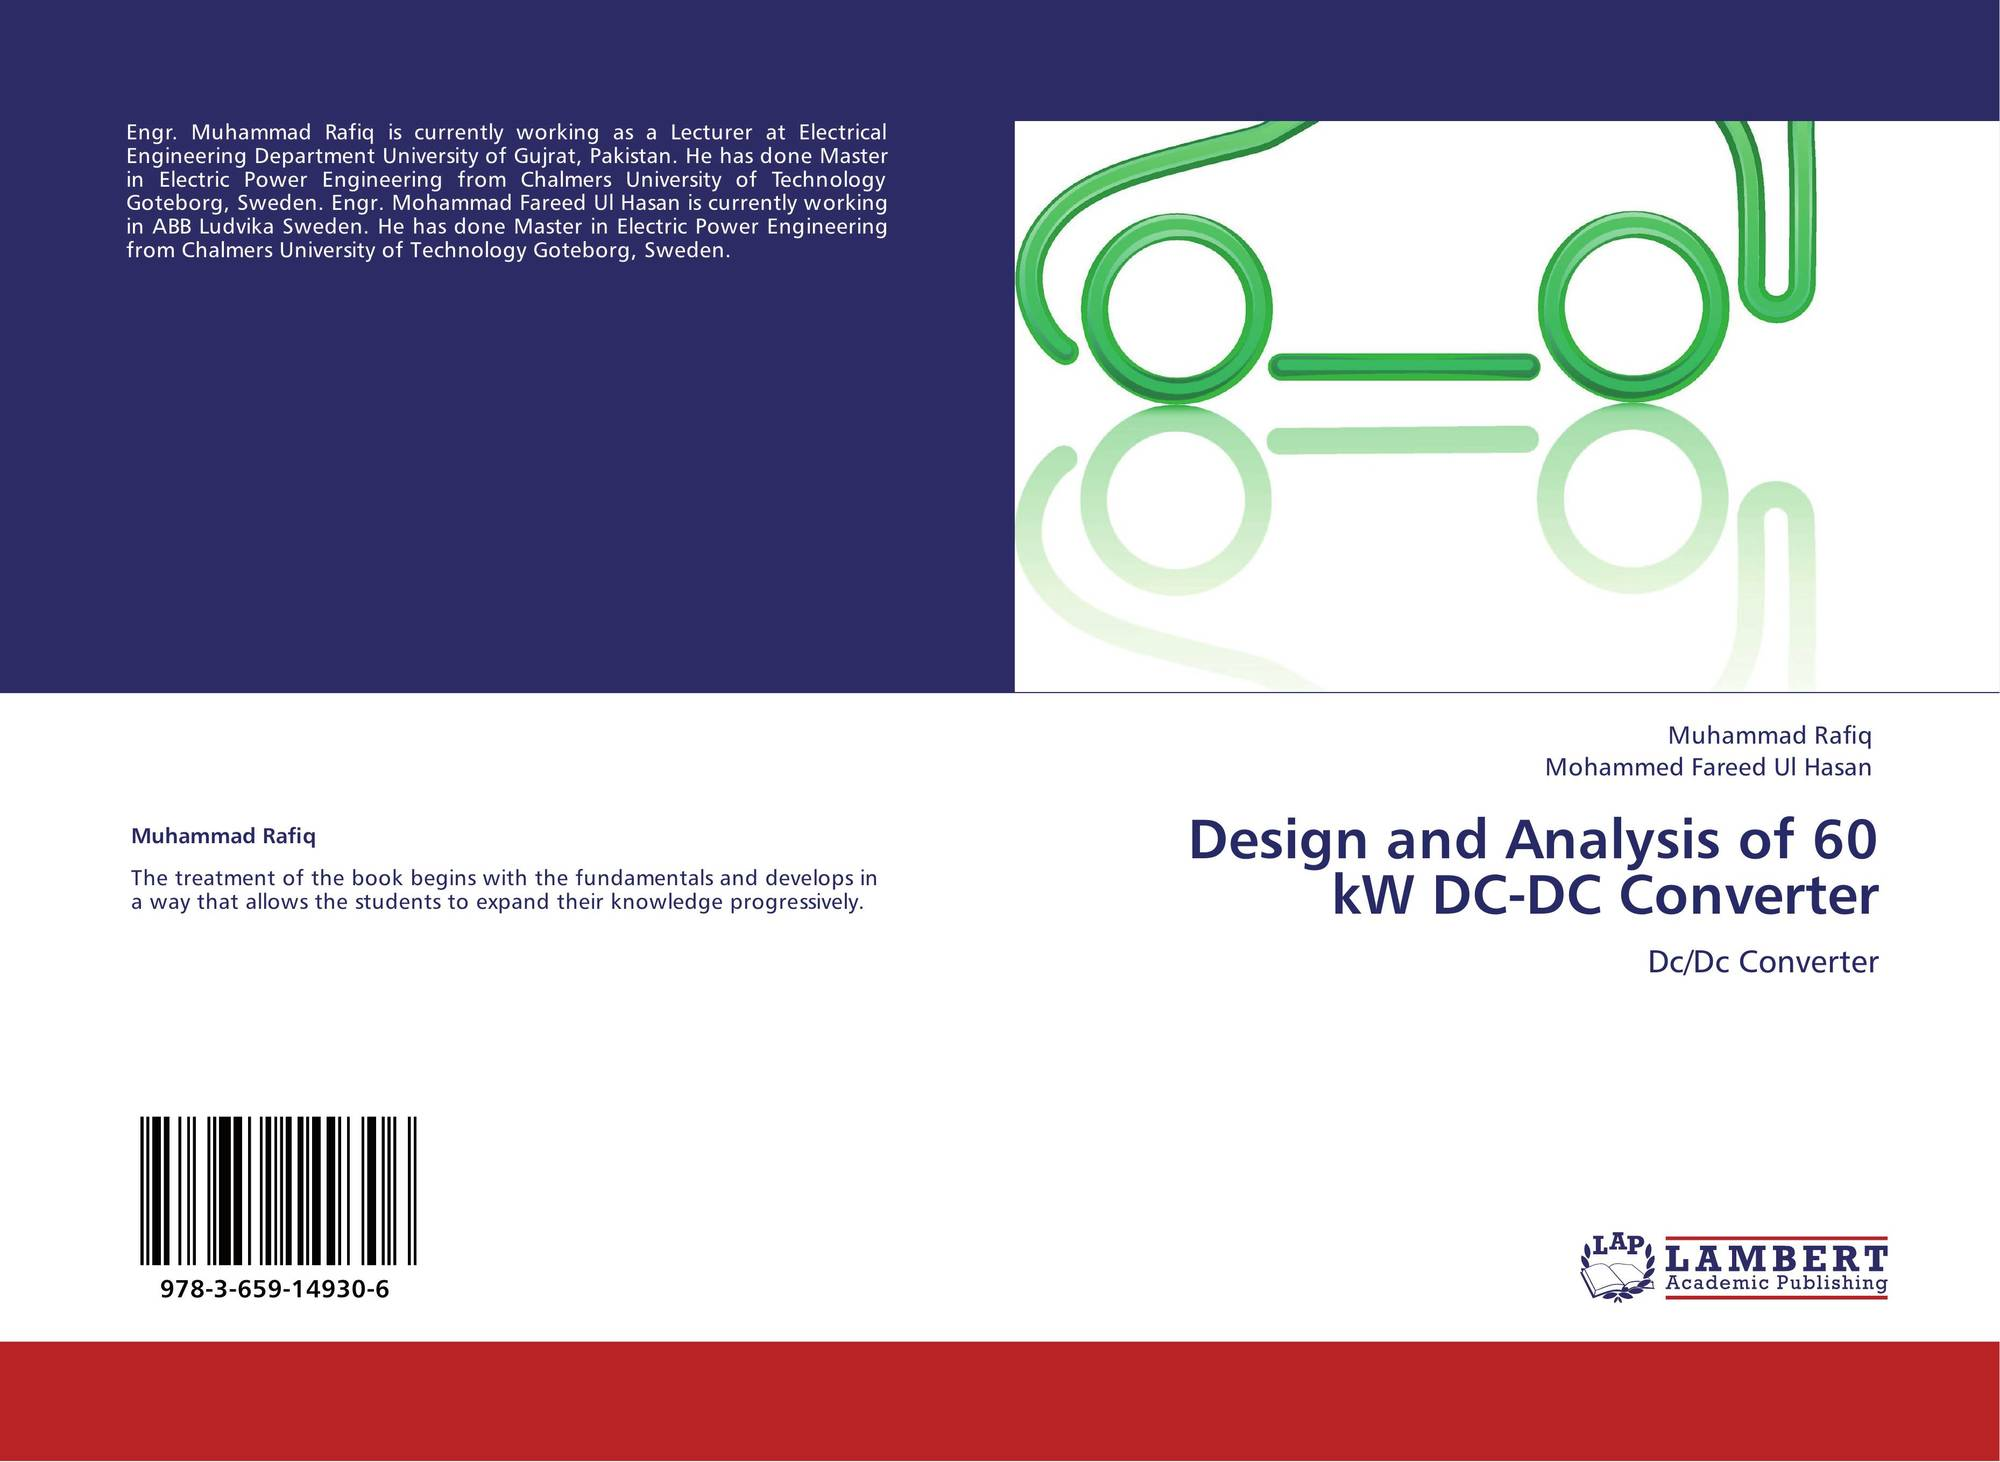 Design And Analysis Of 60 Kw Dc Converter 978 3 659 14930 6 9783659149306